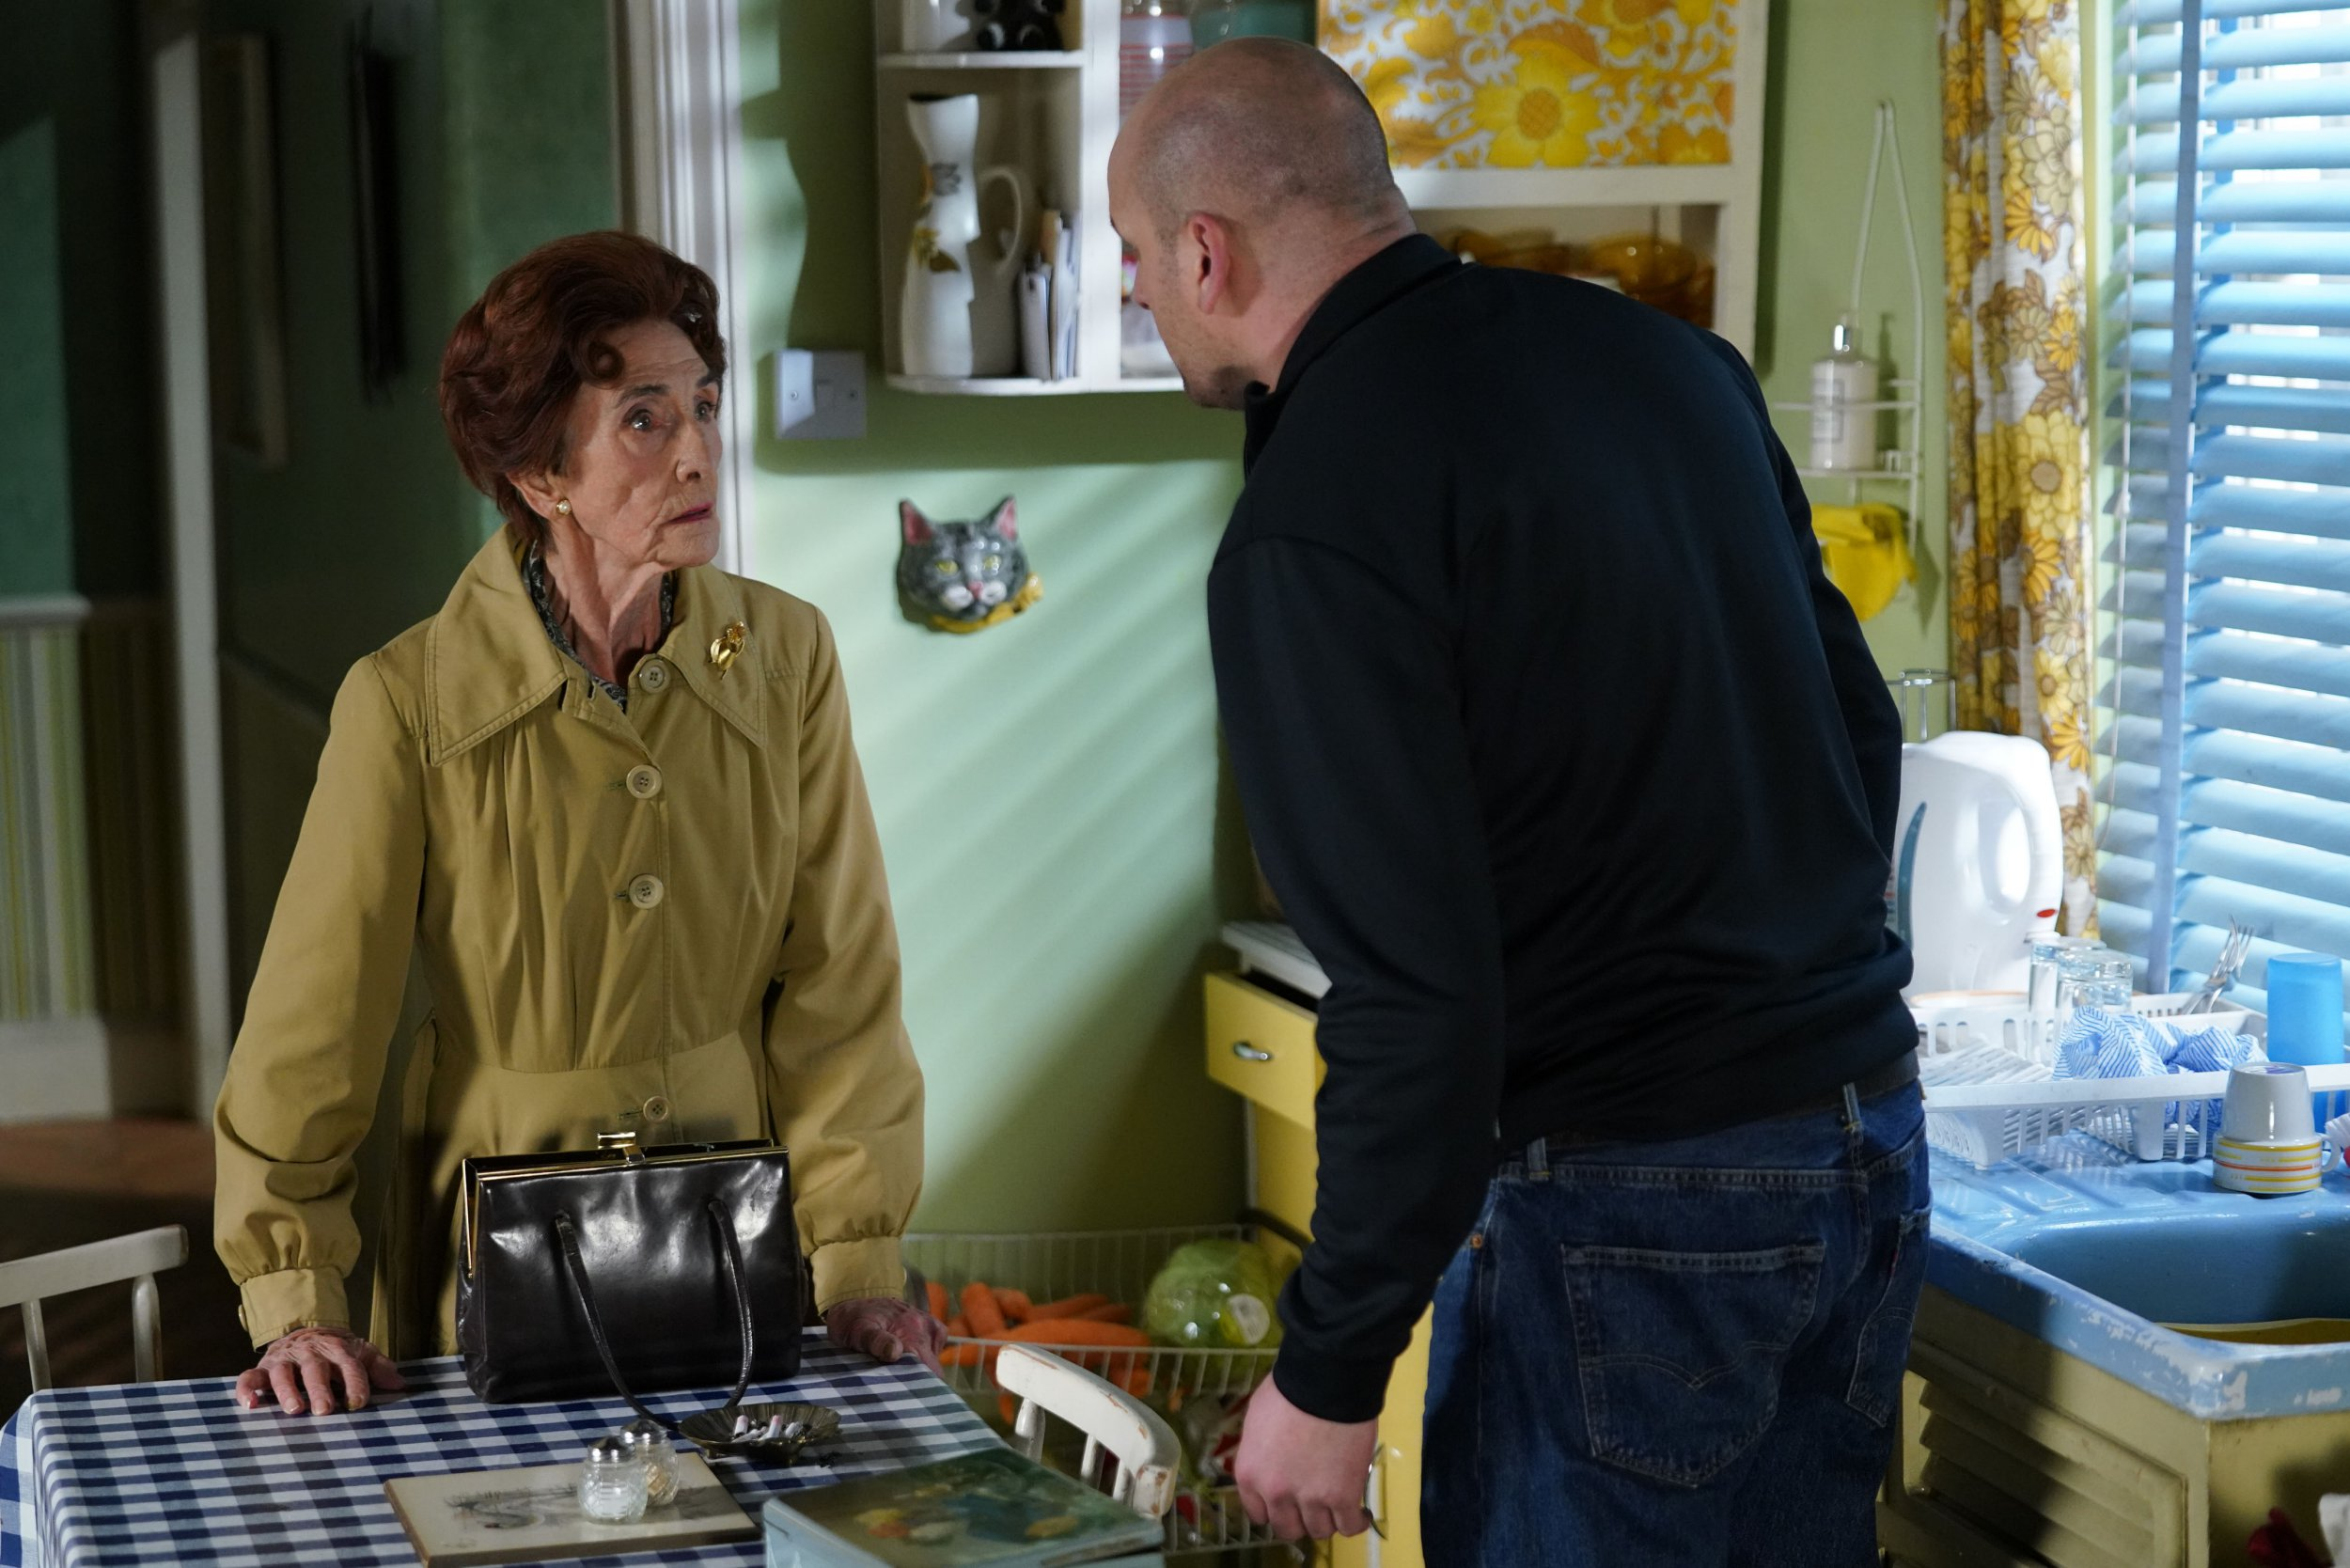 WARNING: Embargoed for publication until 00:00:01 on 08/01/2019 - Programme Name: EastEnders - January - March 2019 - TX: 17/01/2019 - Episode: EastEnders - January - March - 2019 - 5852 (No. 5852) - Picture Shows: *STRICTLY NOT FOR PUBLICATION UNTIL 00:01HRS TUESDAY 8th JANUARY 2019* Dot confronts Stuart about stealing Doctor Legg???s photo Dot Branning (JUNE BROWN), Stuart Highway (RICKY CHAMP) - (C) BBC - Photographer: Kieron McCarron